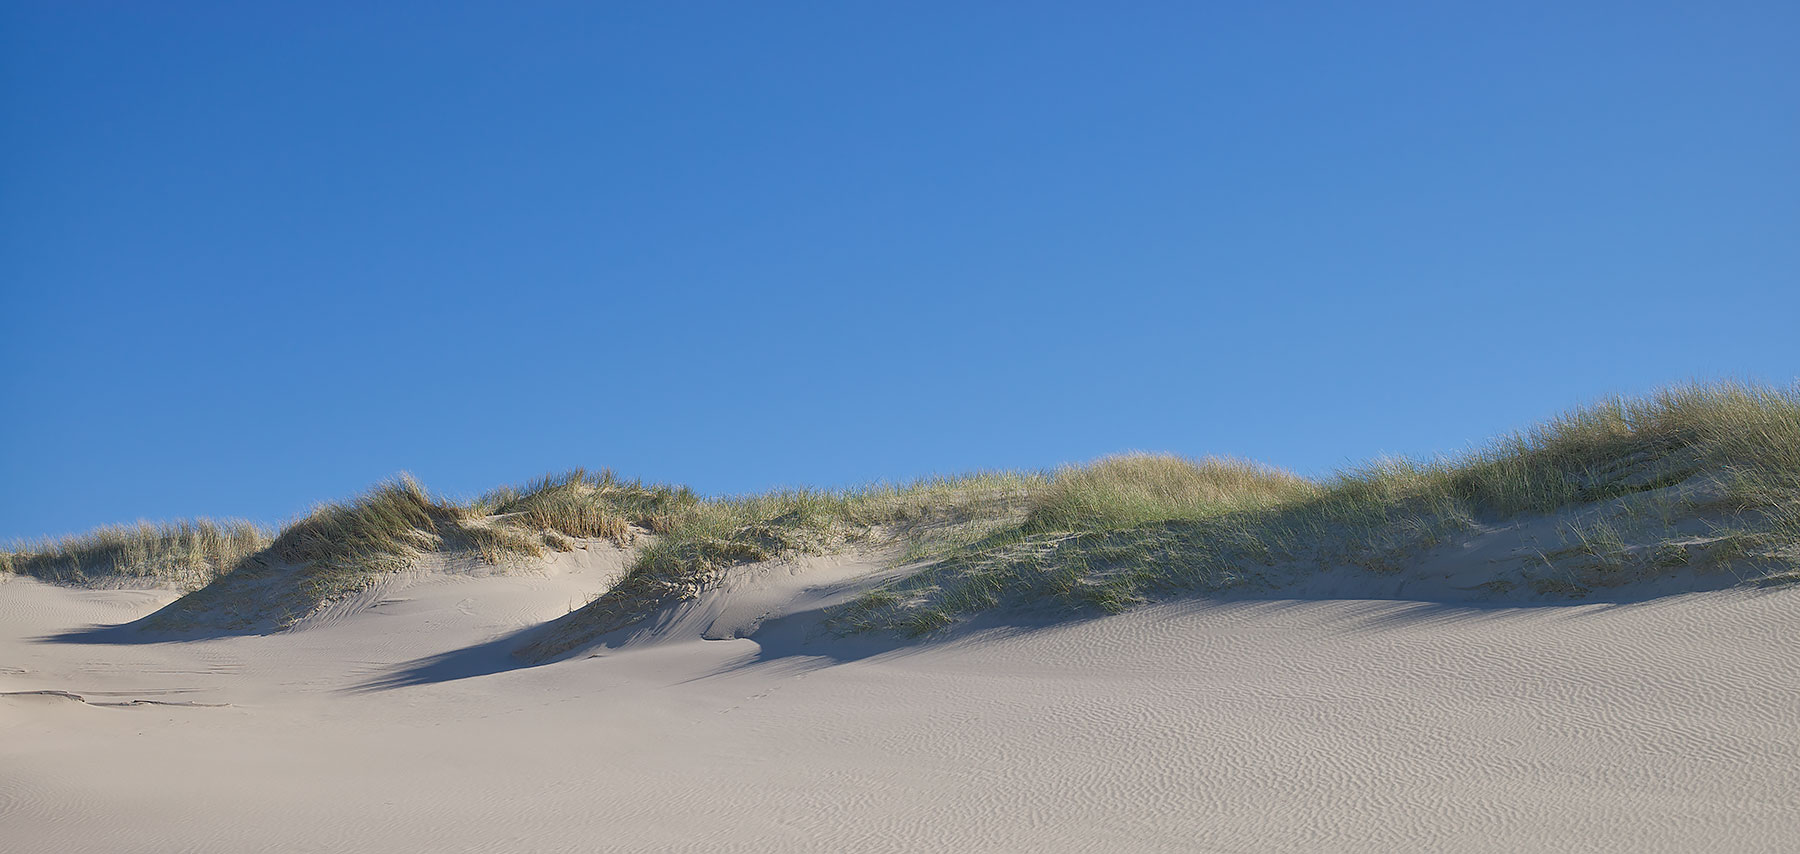 Dunes on Blue ©johncameron.ca